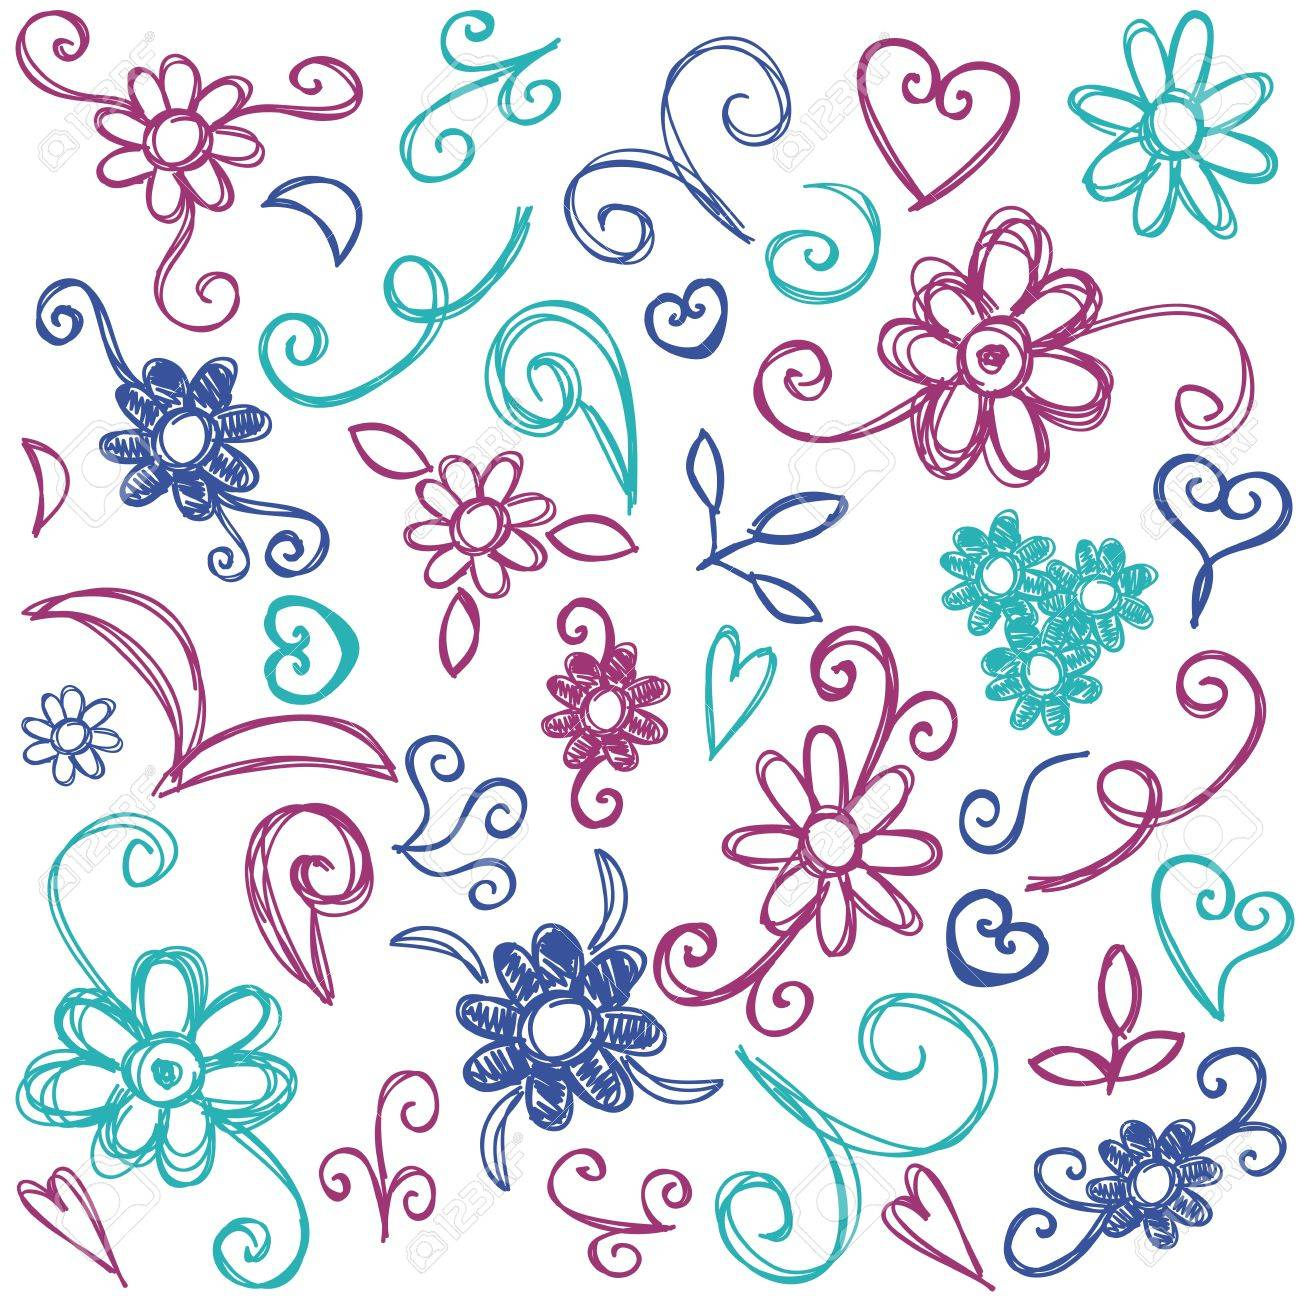 Doodles design elements - hand drawn illustration with flowers, spirals and swirls Stock Vector - 16268489